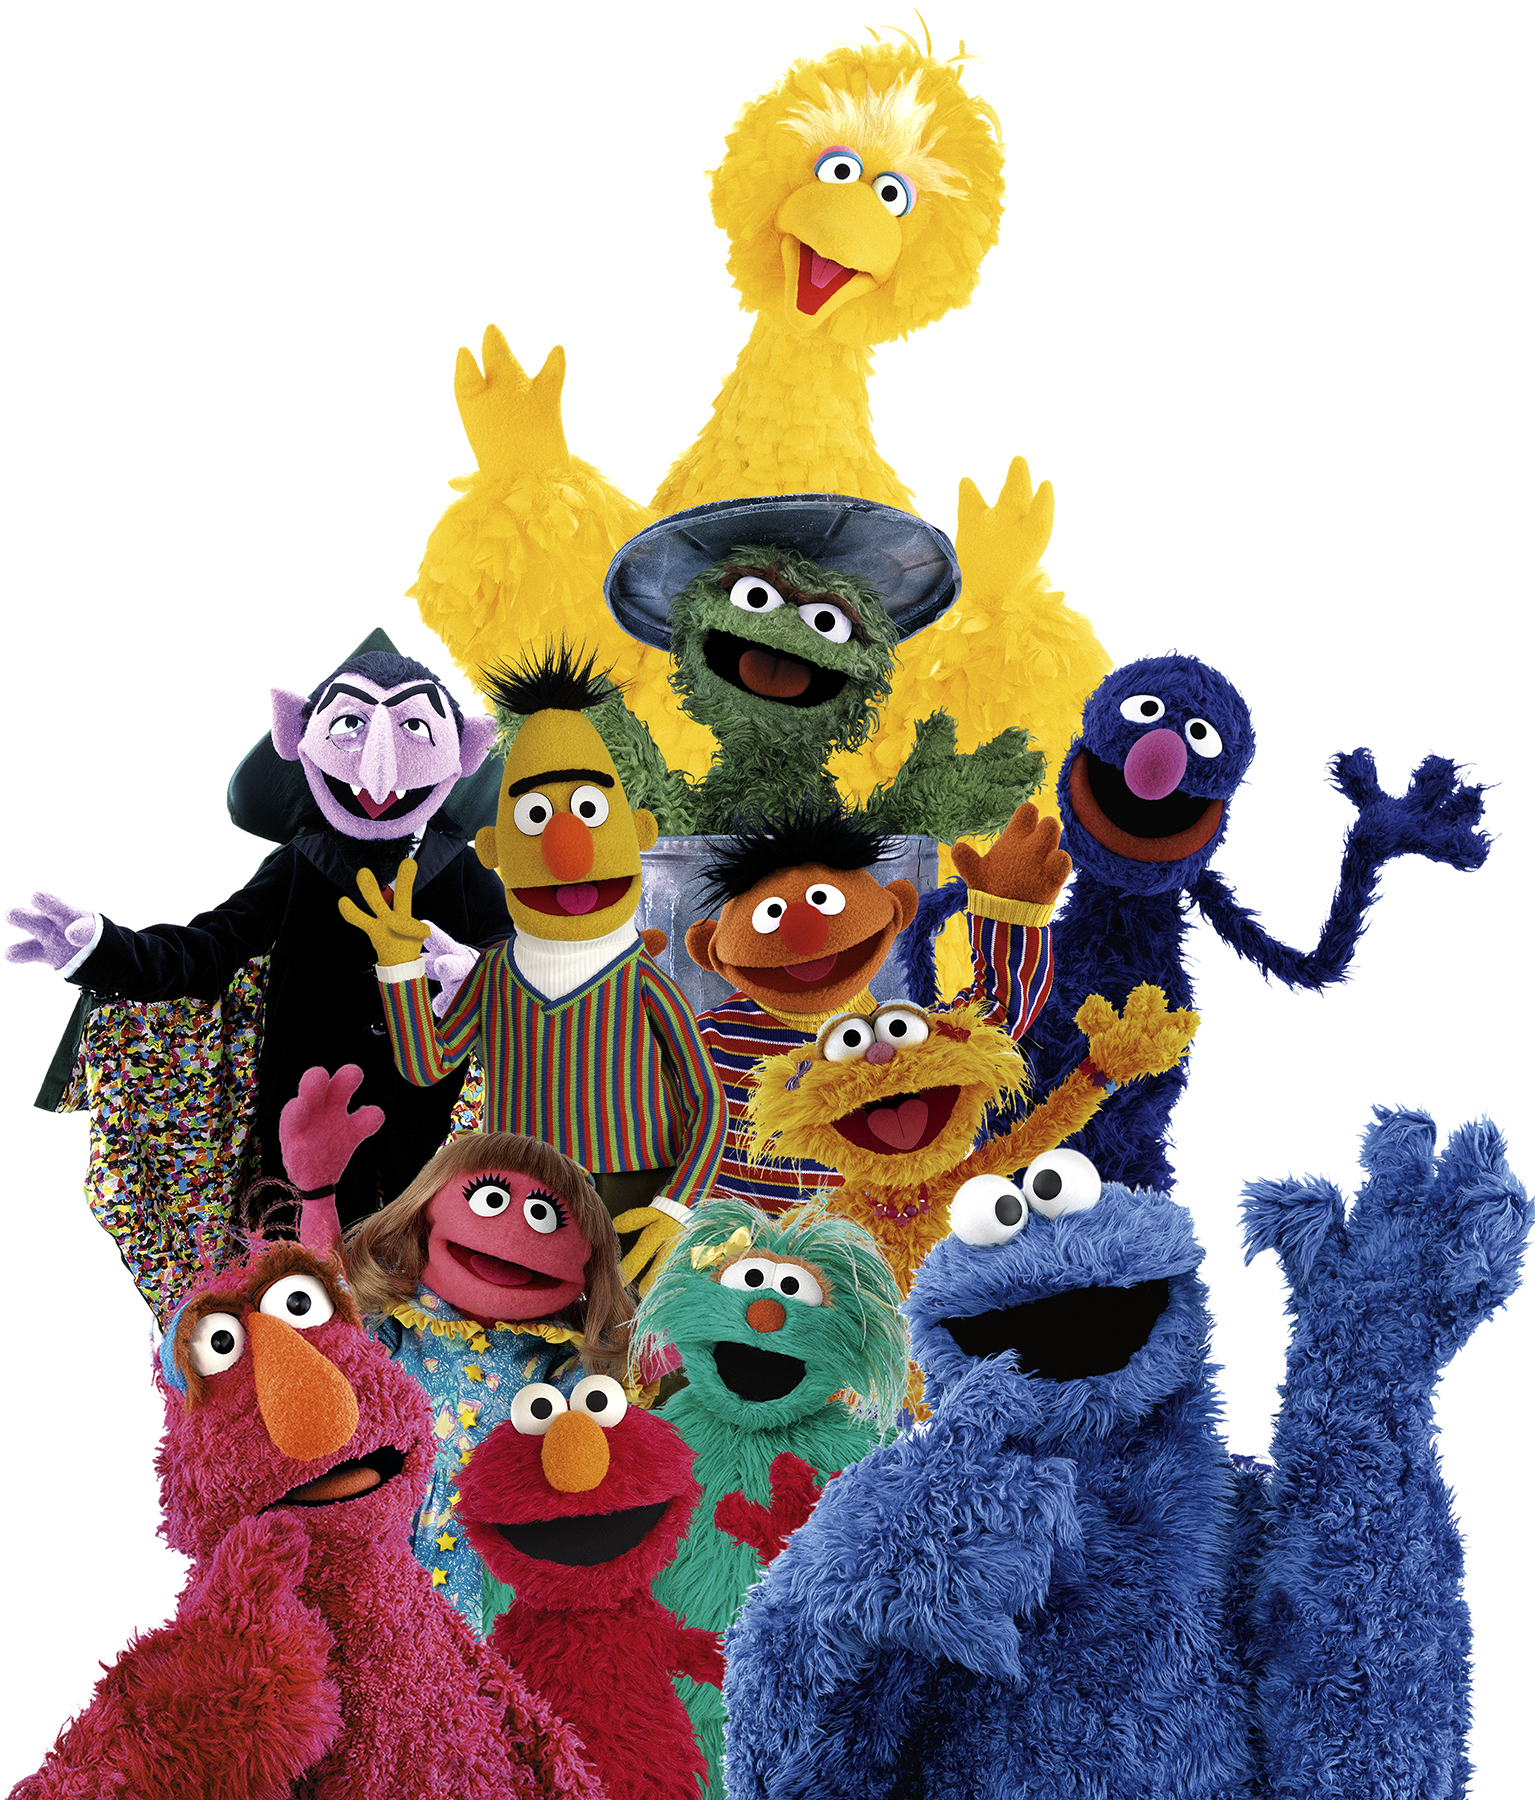 It is an image of Smart Sesame Street Images